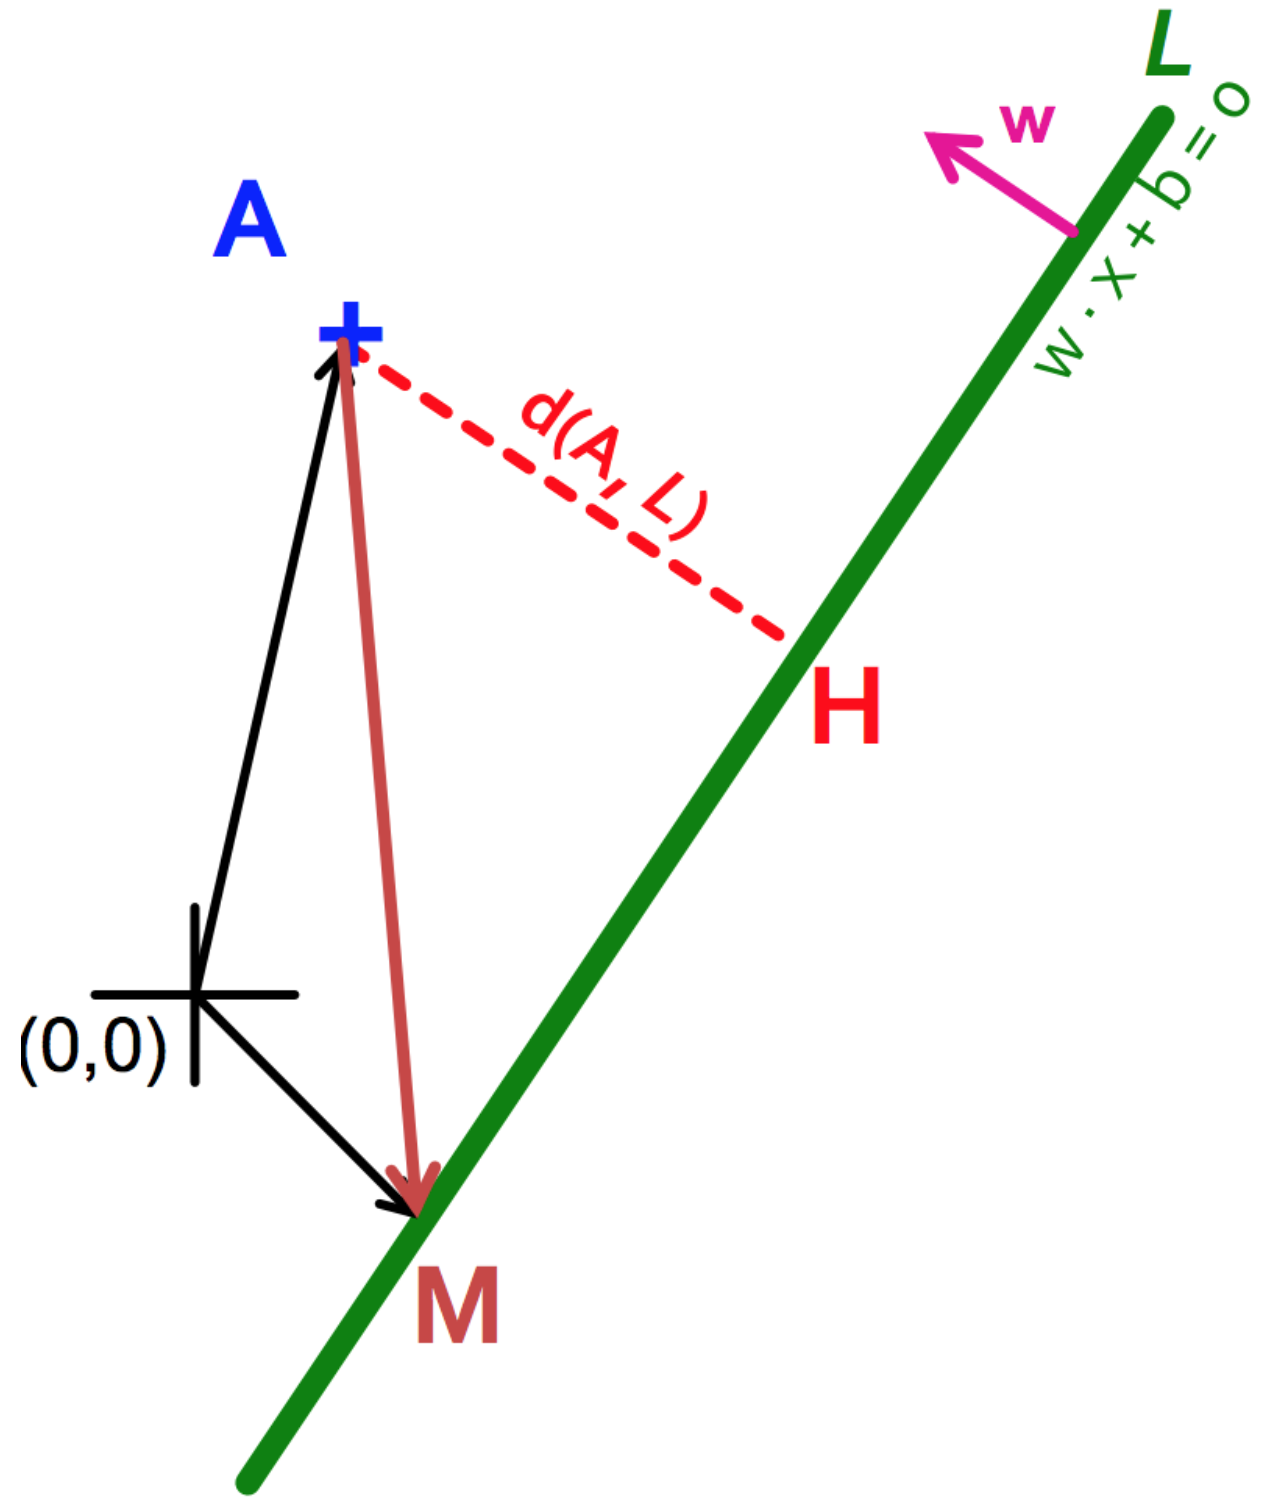 Support vector machines — Courses